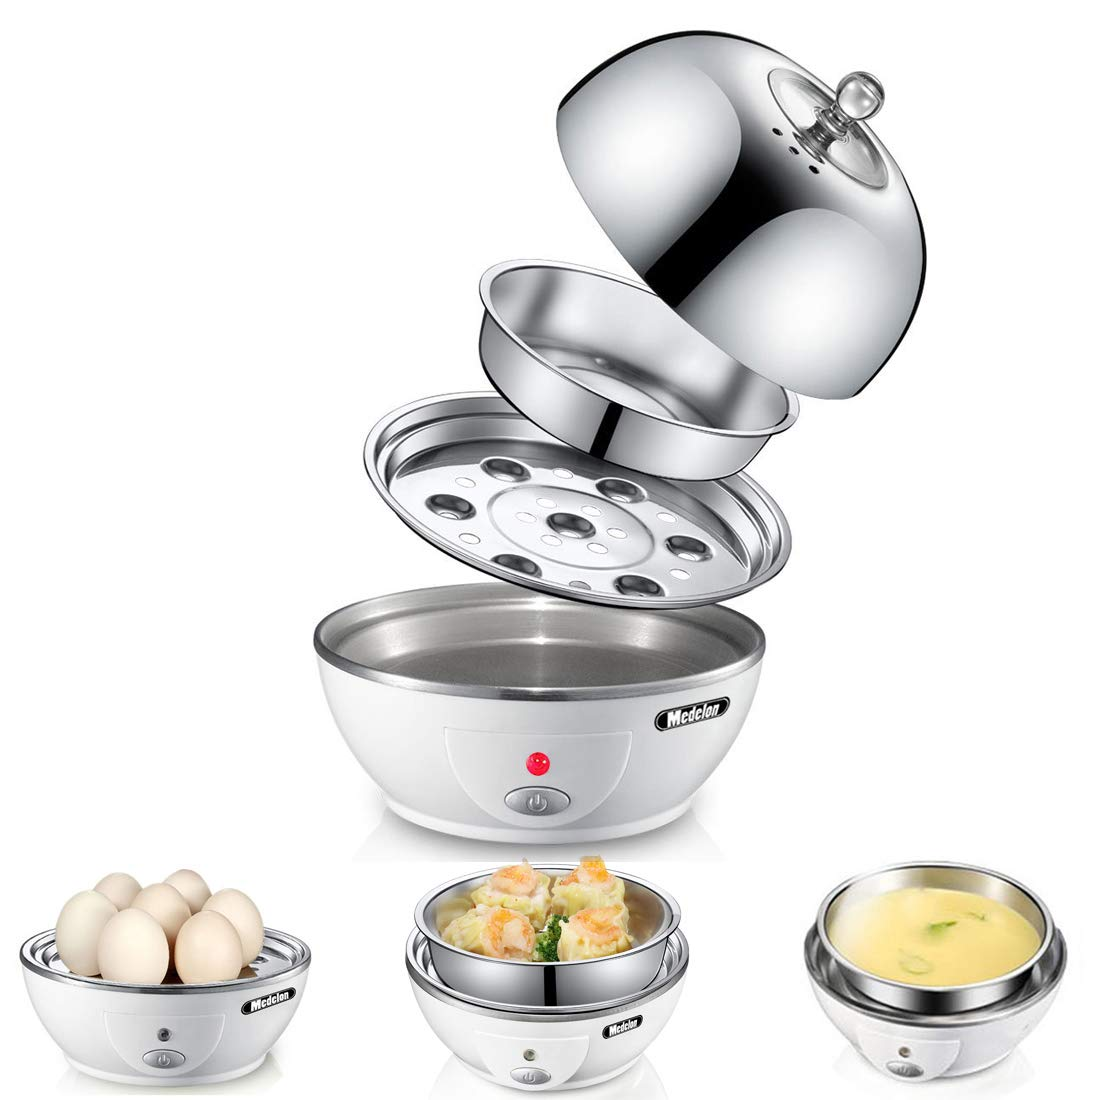 Medelon Egg Boiler, Egg Cooker, Ideal Soft and Hard Boiled Egg Cooker 7 Egg Capacity - with Removable Tray & Auto Shut Off Feature - White(2-Years Warranty)